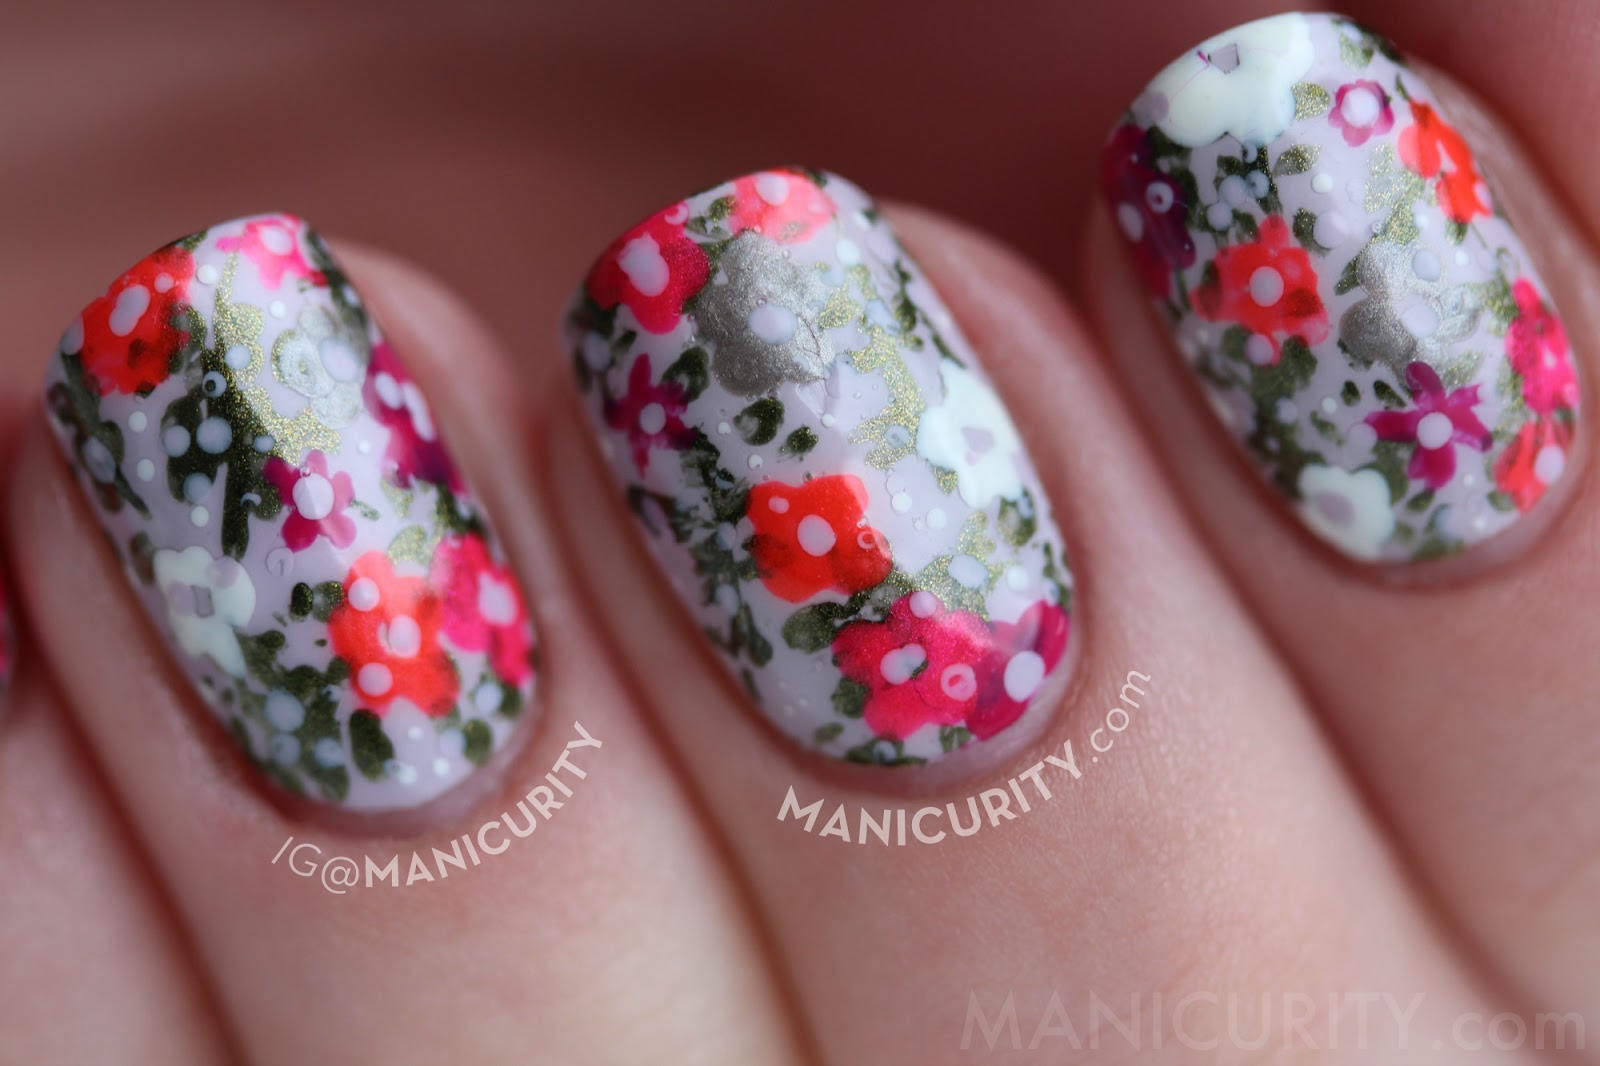 Spring to Summer Floral Neon + Pastel Freehand Nail Art with China Glaze Polishes featuring Light as Air, Agro, Hook and Line, Surfin' For Boys, Fuchsia Fanatic, Love's a Beach on short nails | Manicurity.com